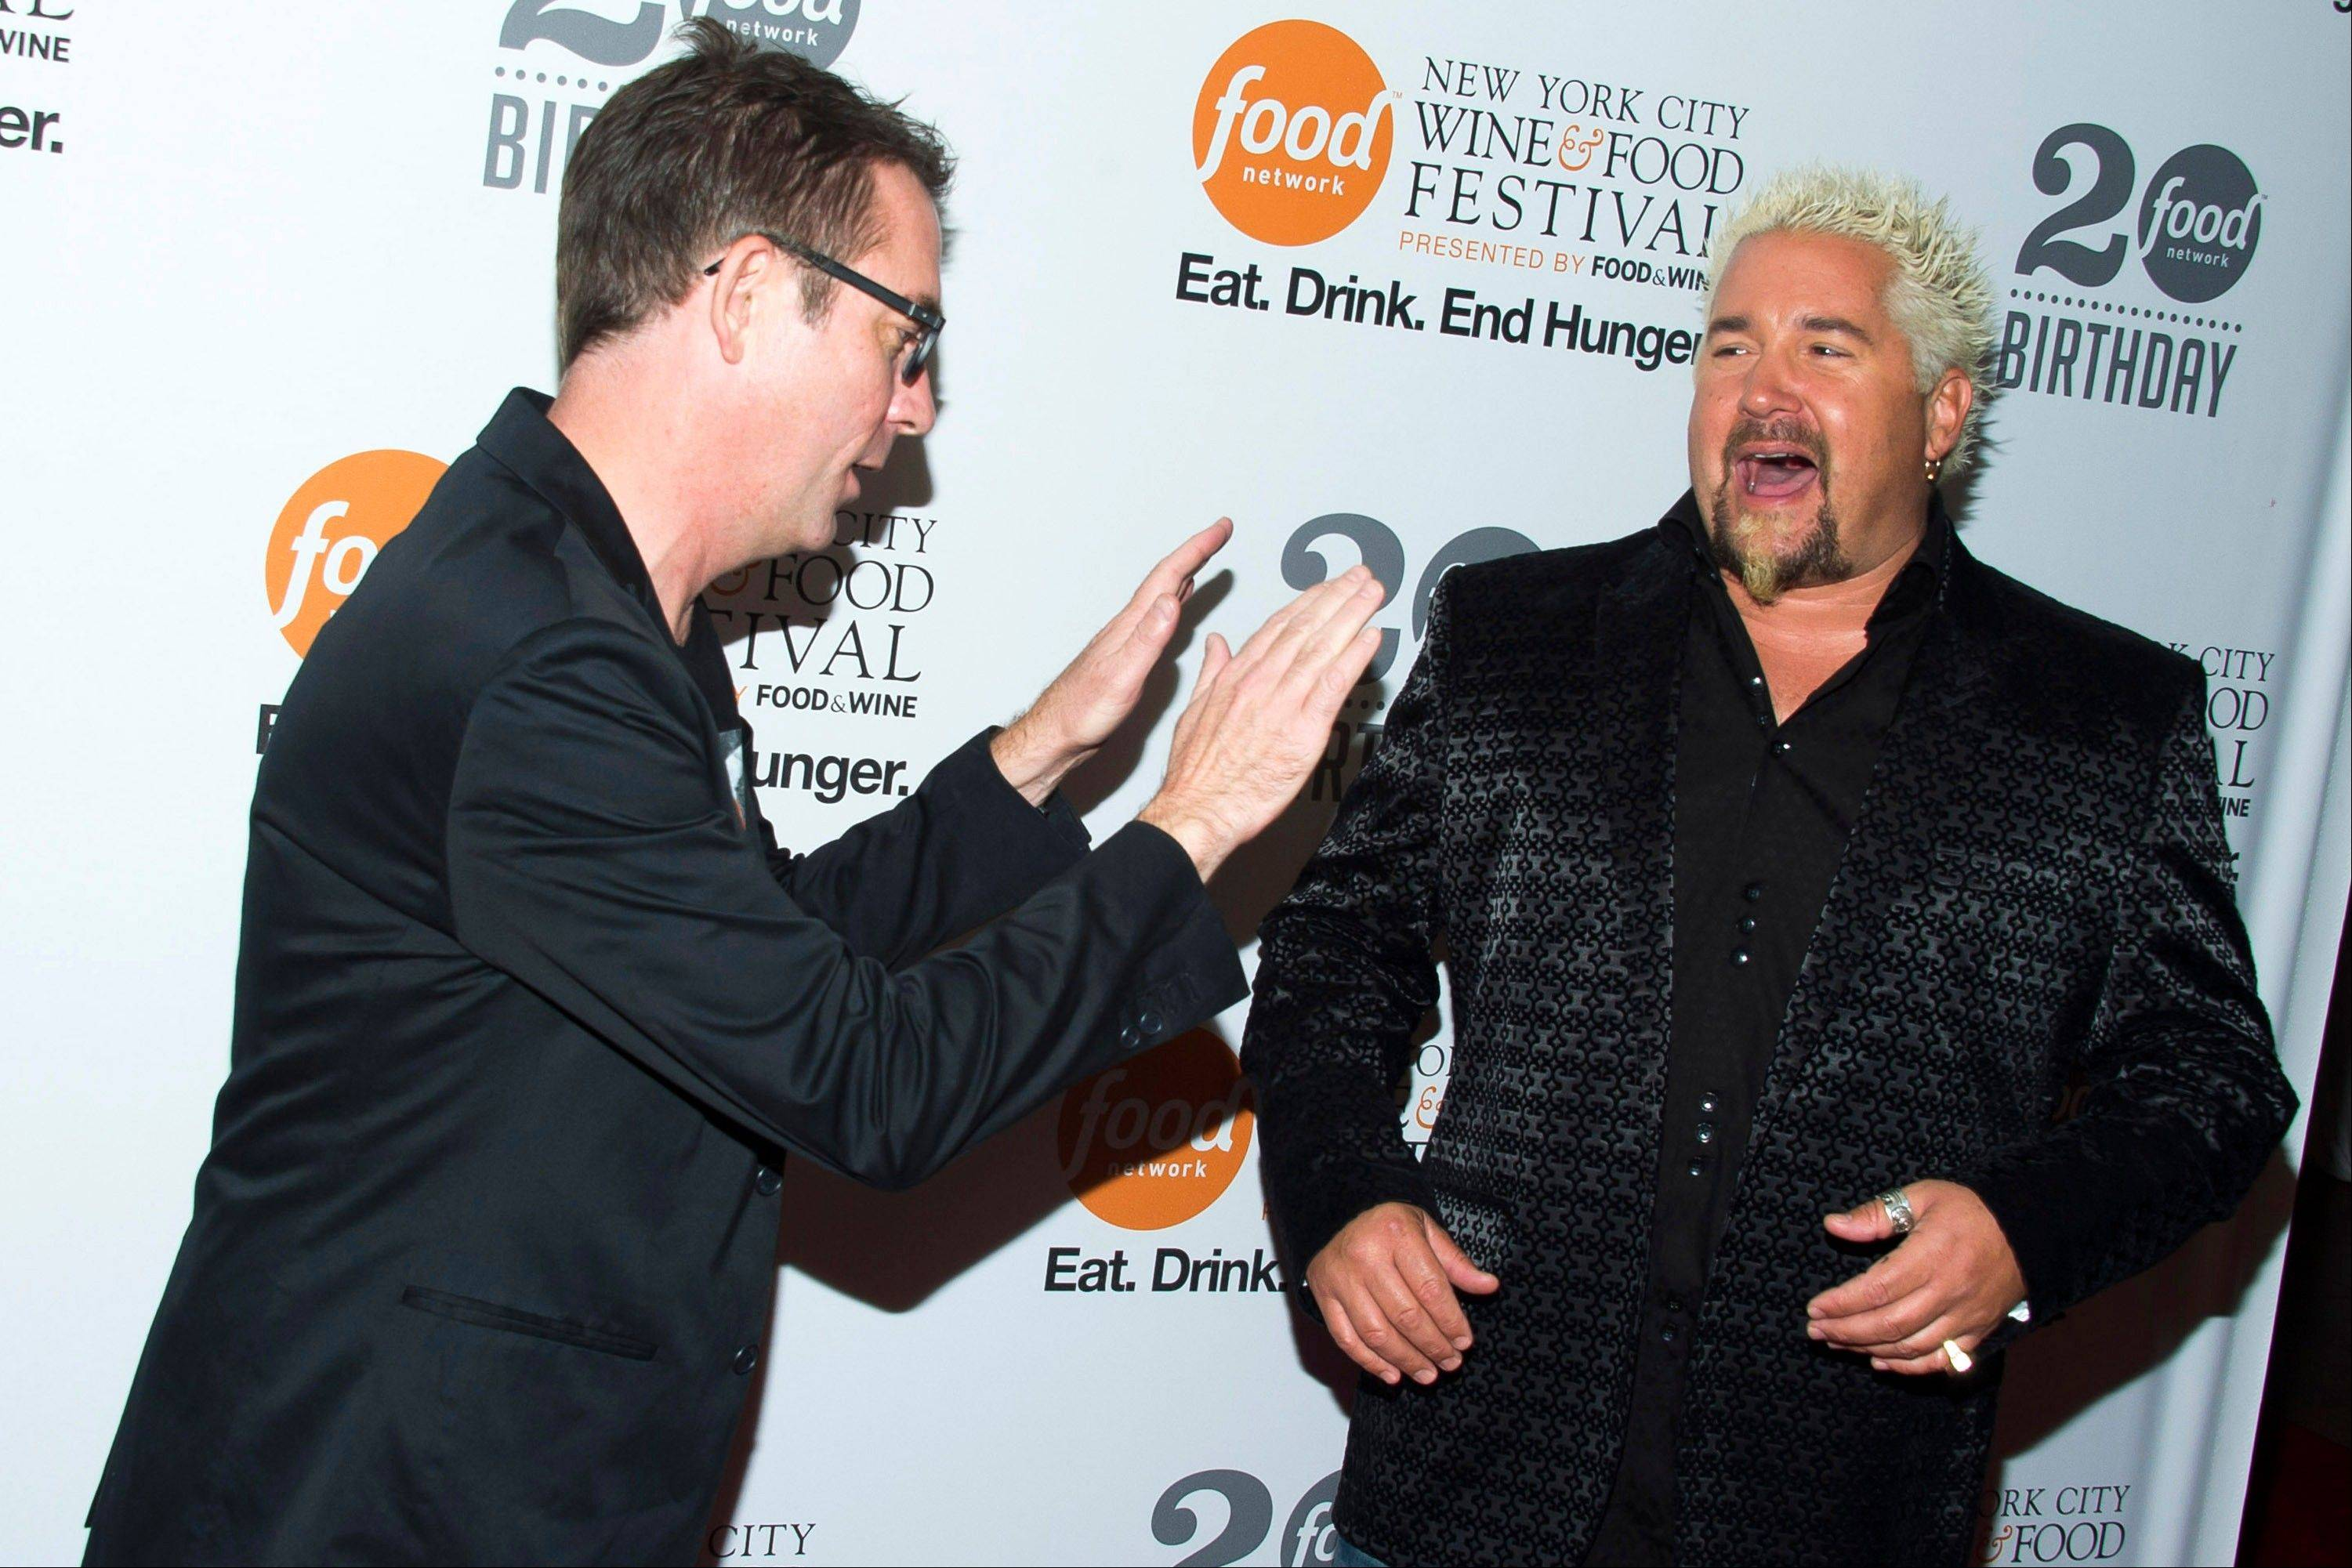 Ted Allen, left, and Guy Fieri attend the Food Network's 20th birthday party on Thursday in New York.